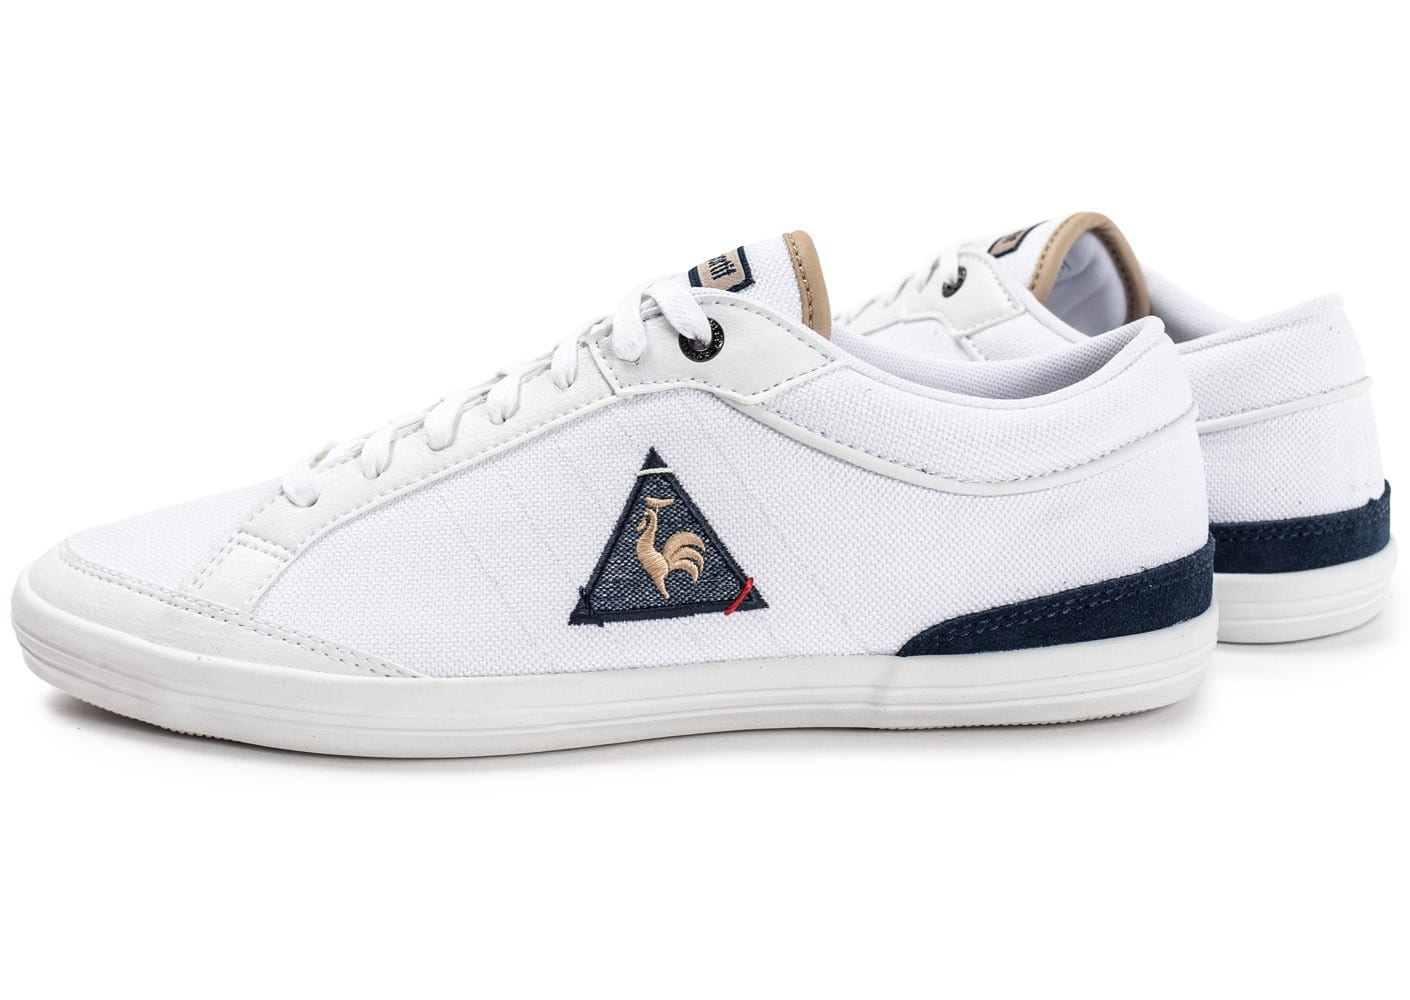 le coq sportif feret craft blanche chaussures homme chausport. Black Bedroom Furniture Sets. Home Design Ideas